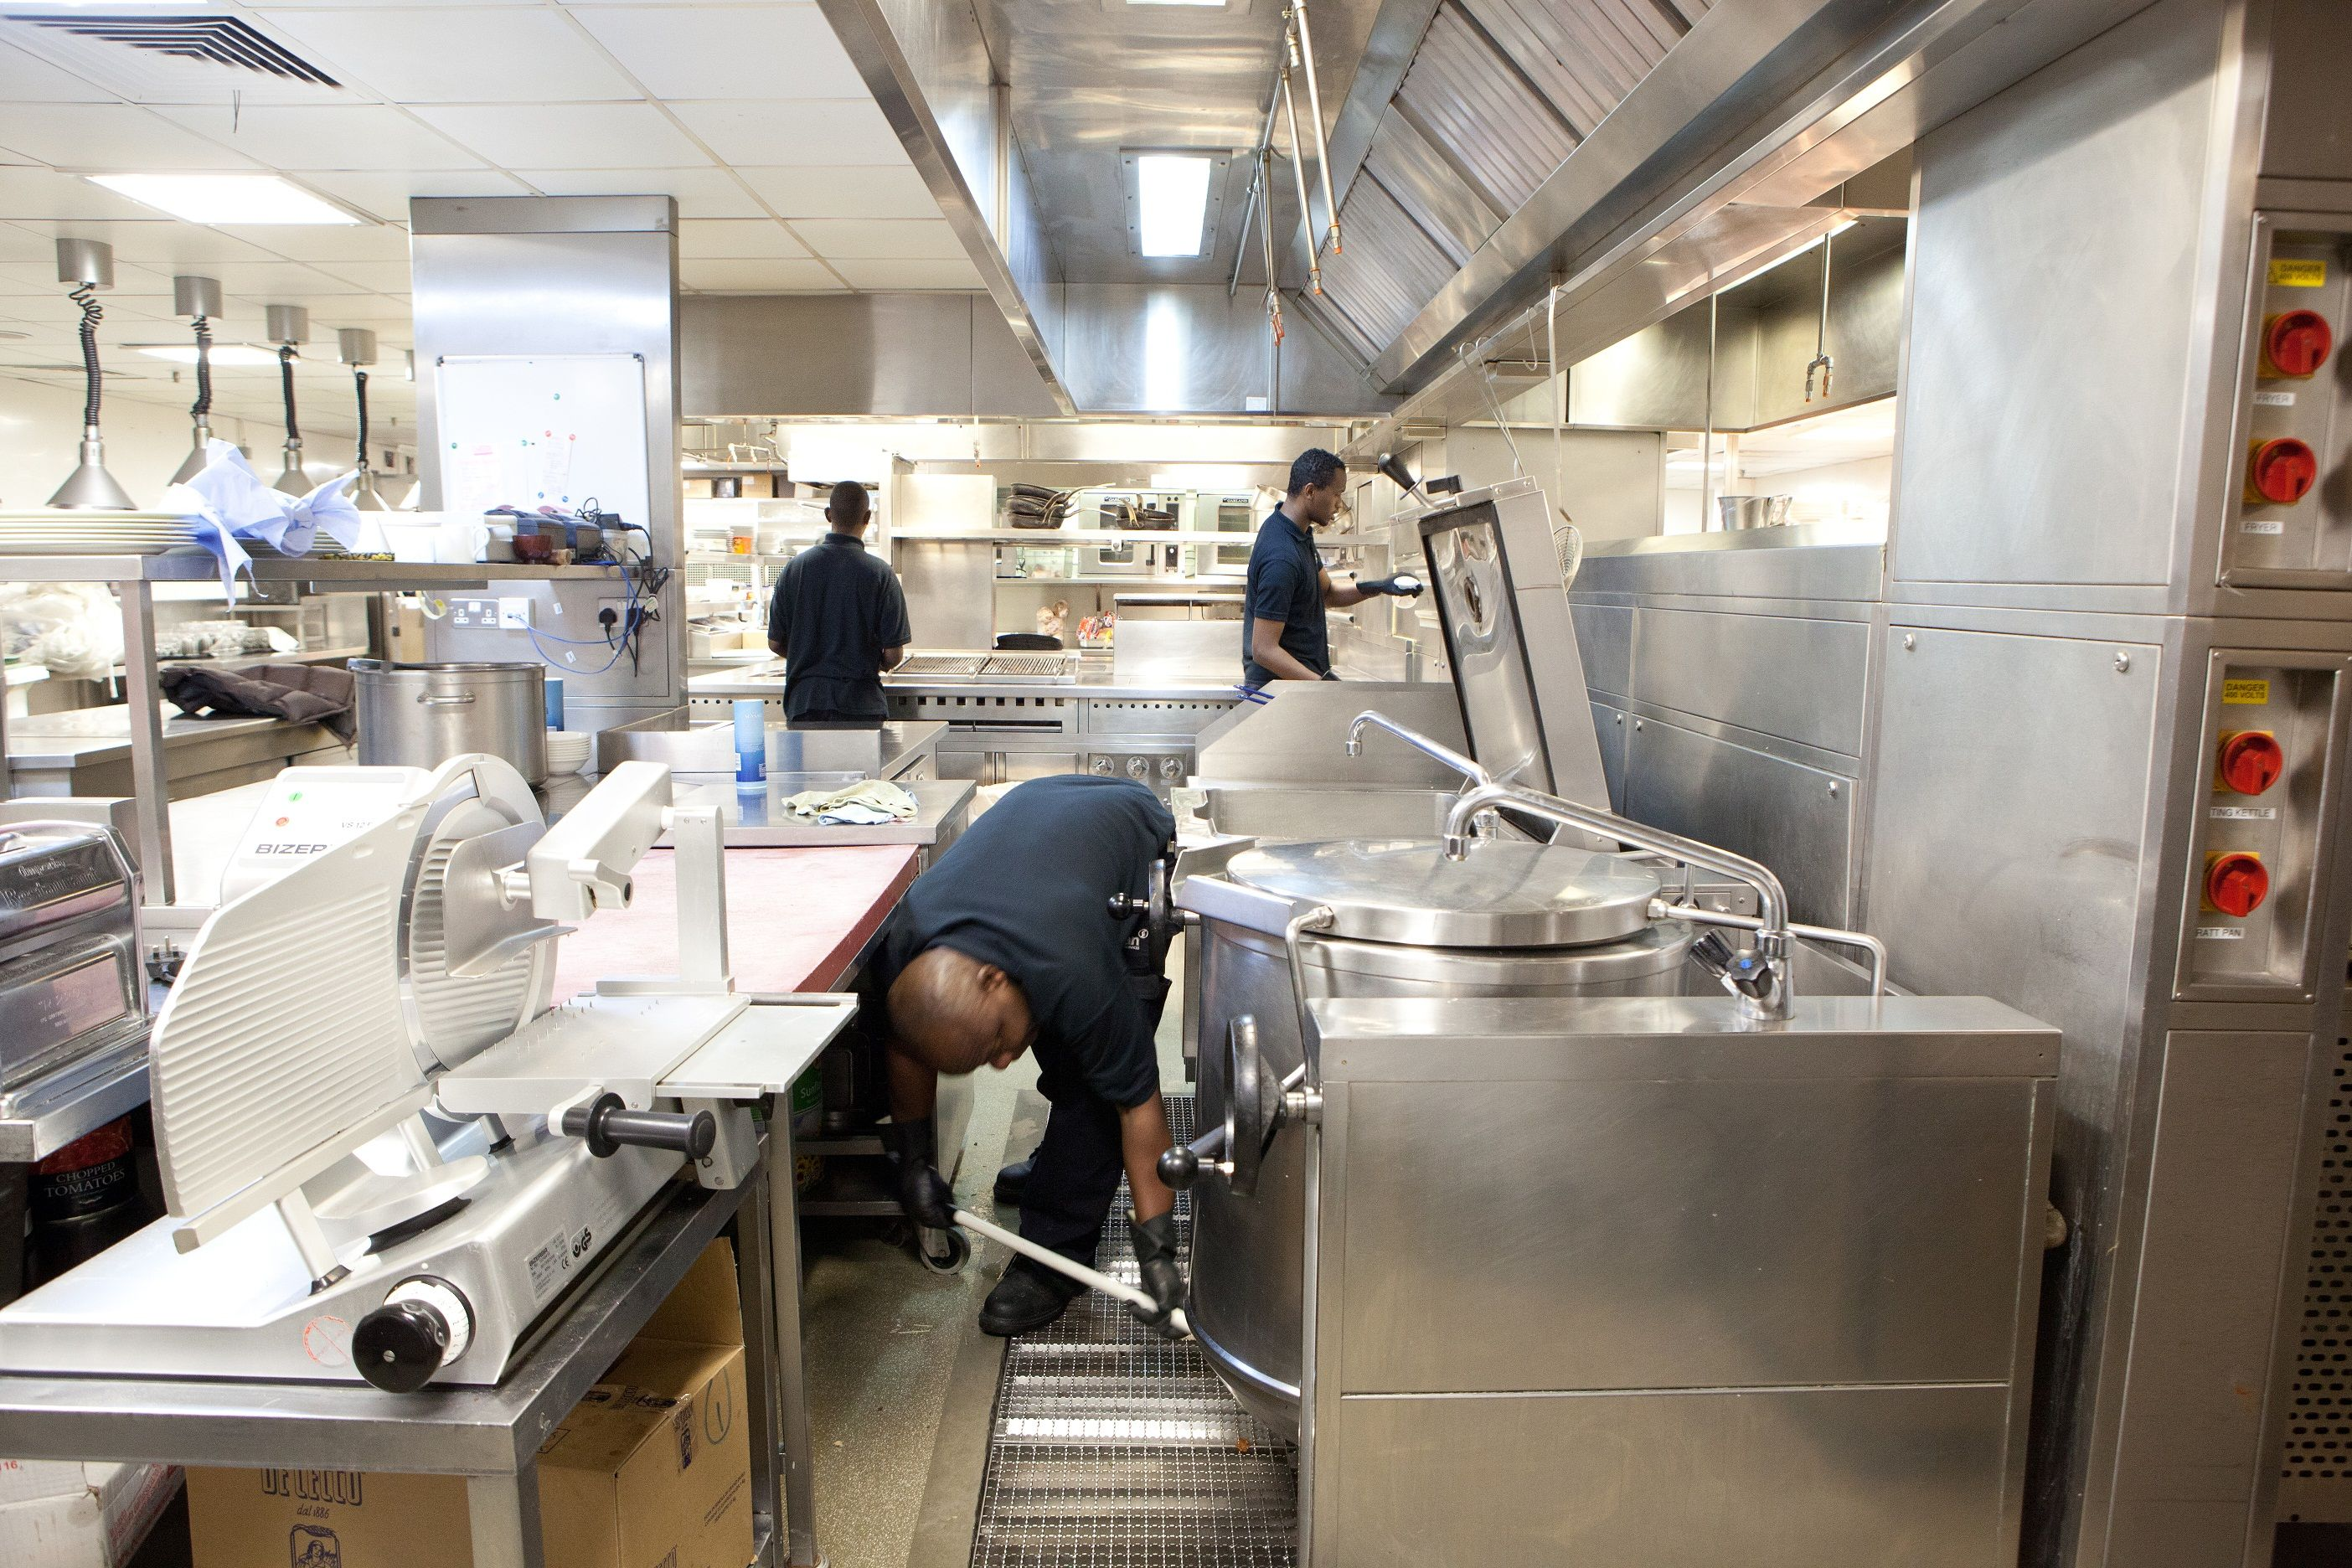 hy5 offer unbeatable commercial kitchen cleaning in cumbria to help you ensure that your kitchen is - Restaurant Cleaner